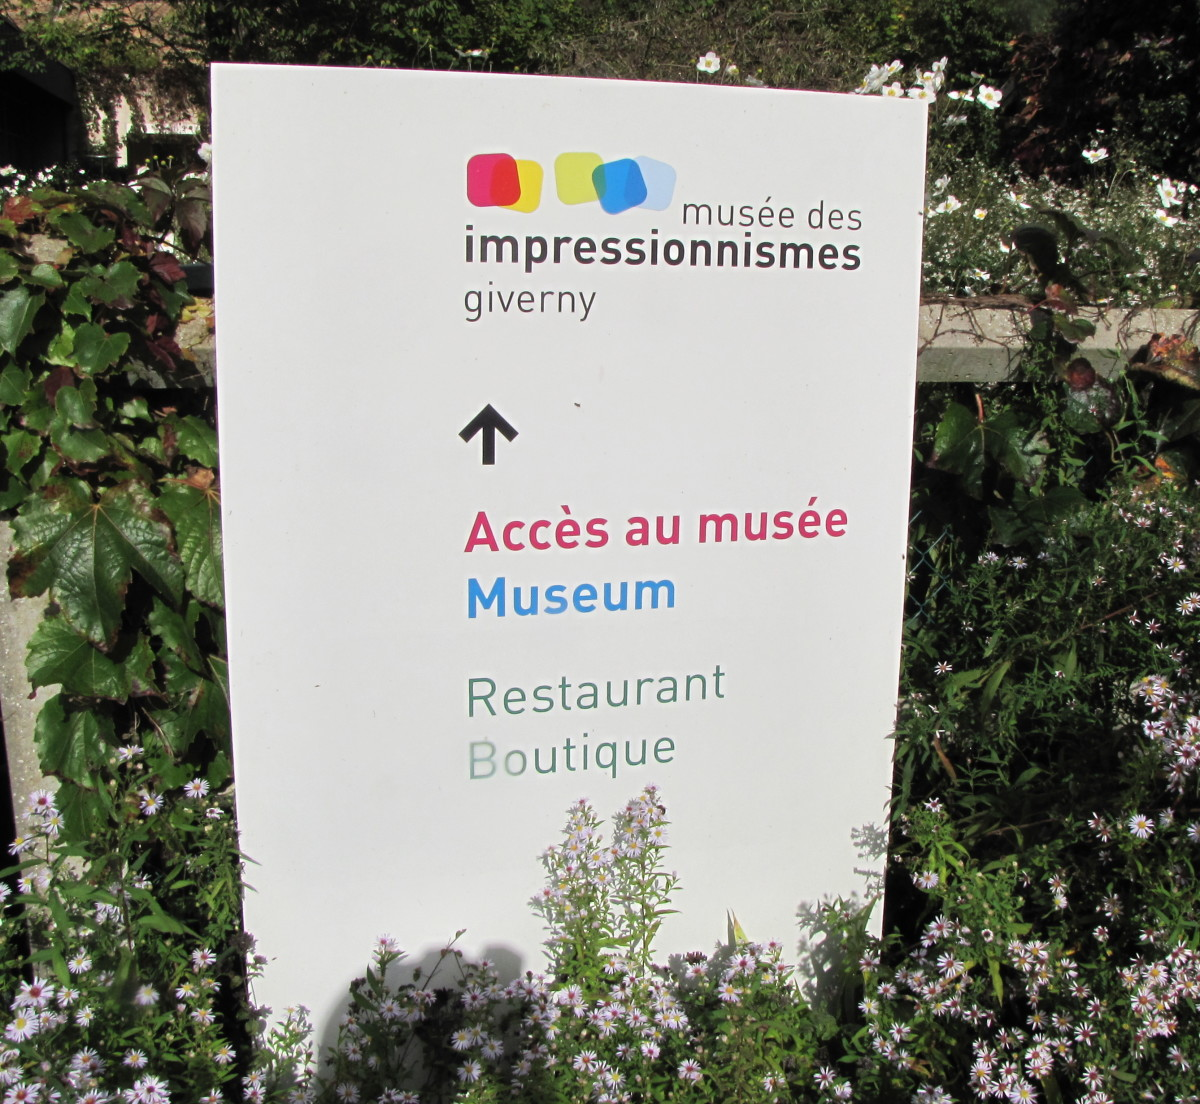 Many signs are in both French and English.